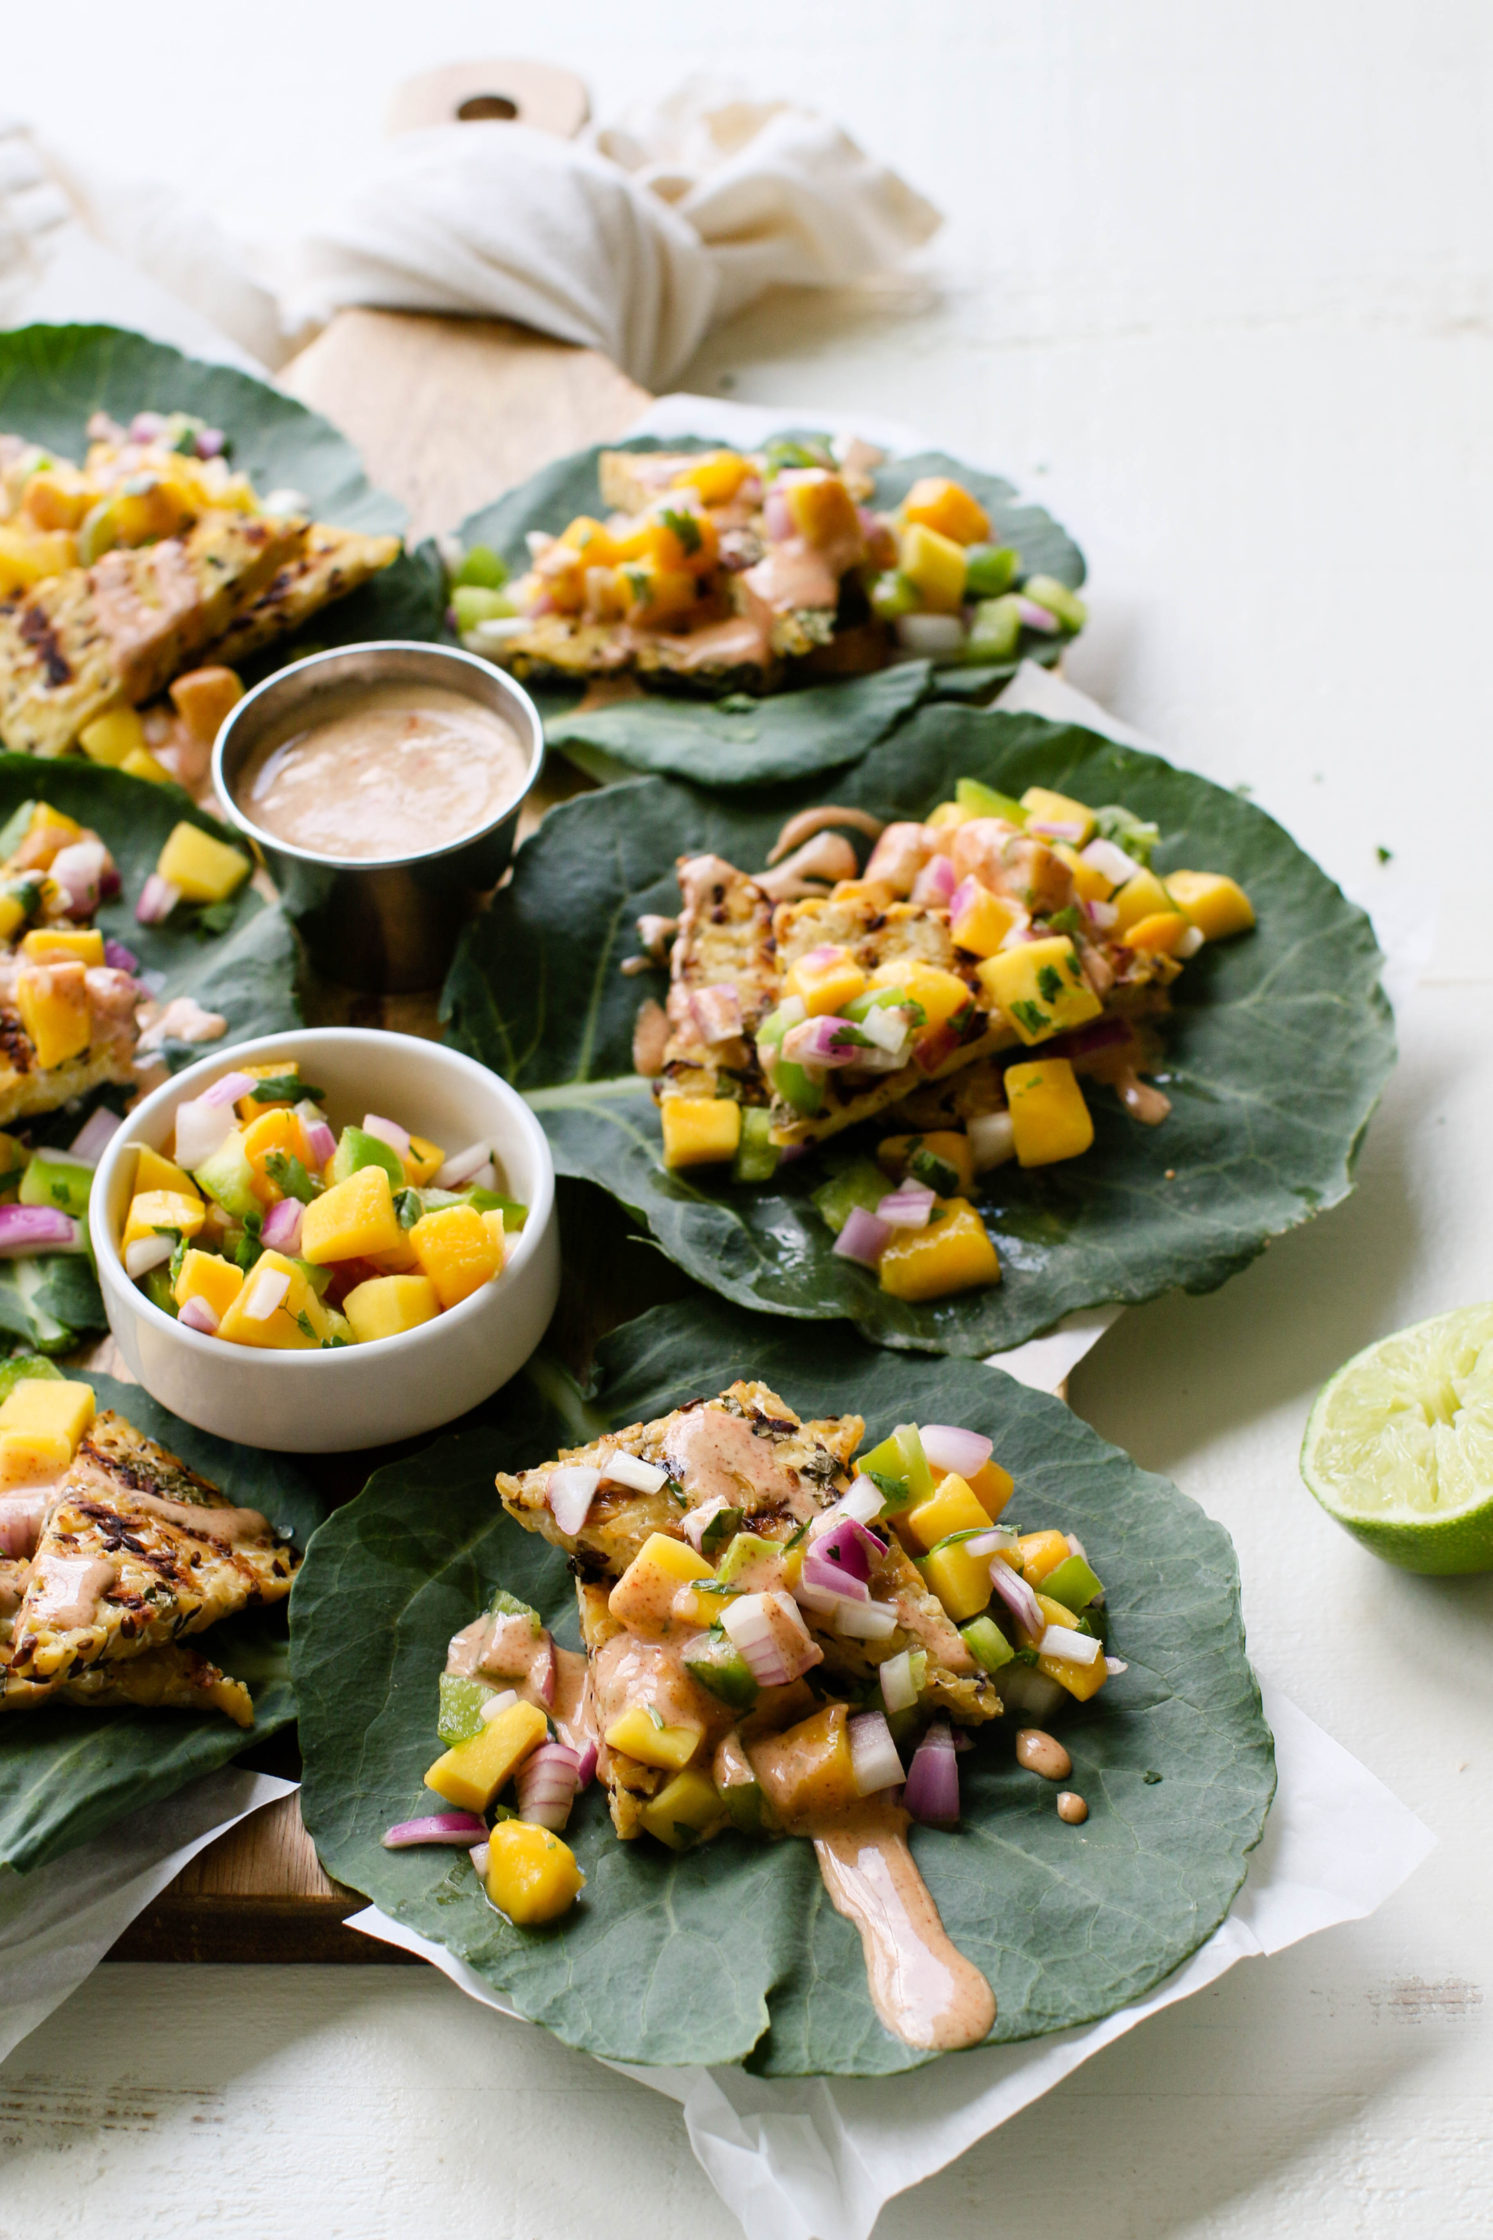 Grilled Tempeh Collard Wraps with Mango Salsa & Spicy Almond Butter Sauce